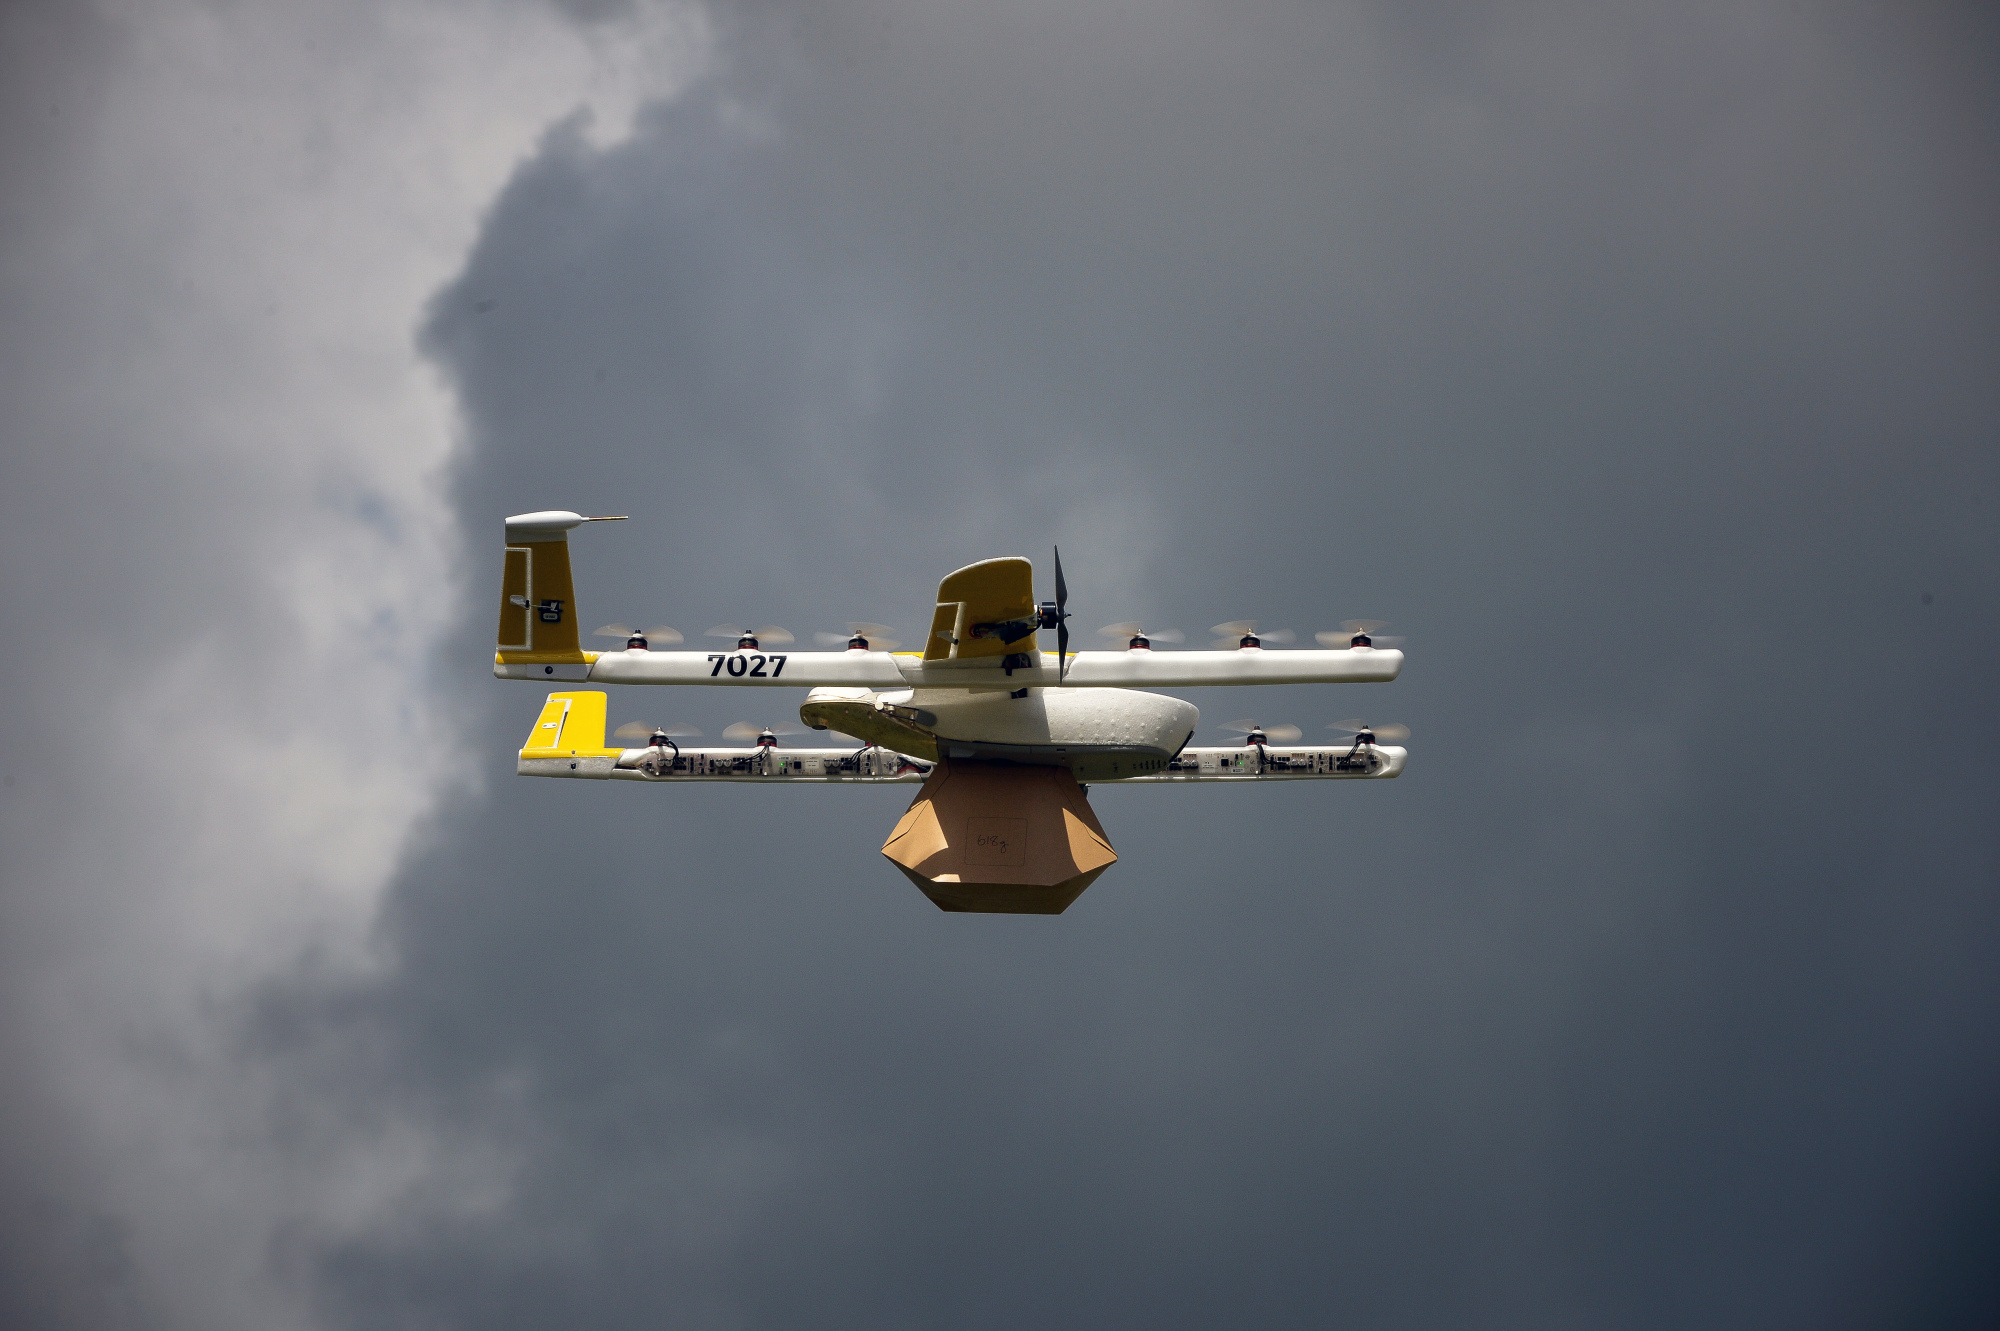 bloomberg.com - Alan Levin - Google Spinoff's Drone Delivery Business Gets FAA Approval